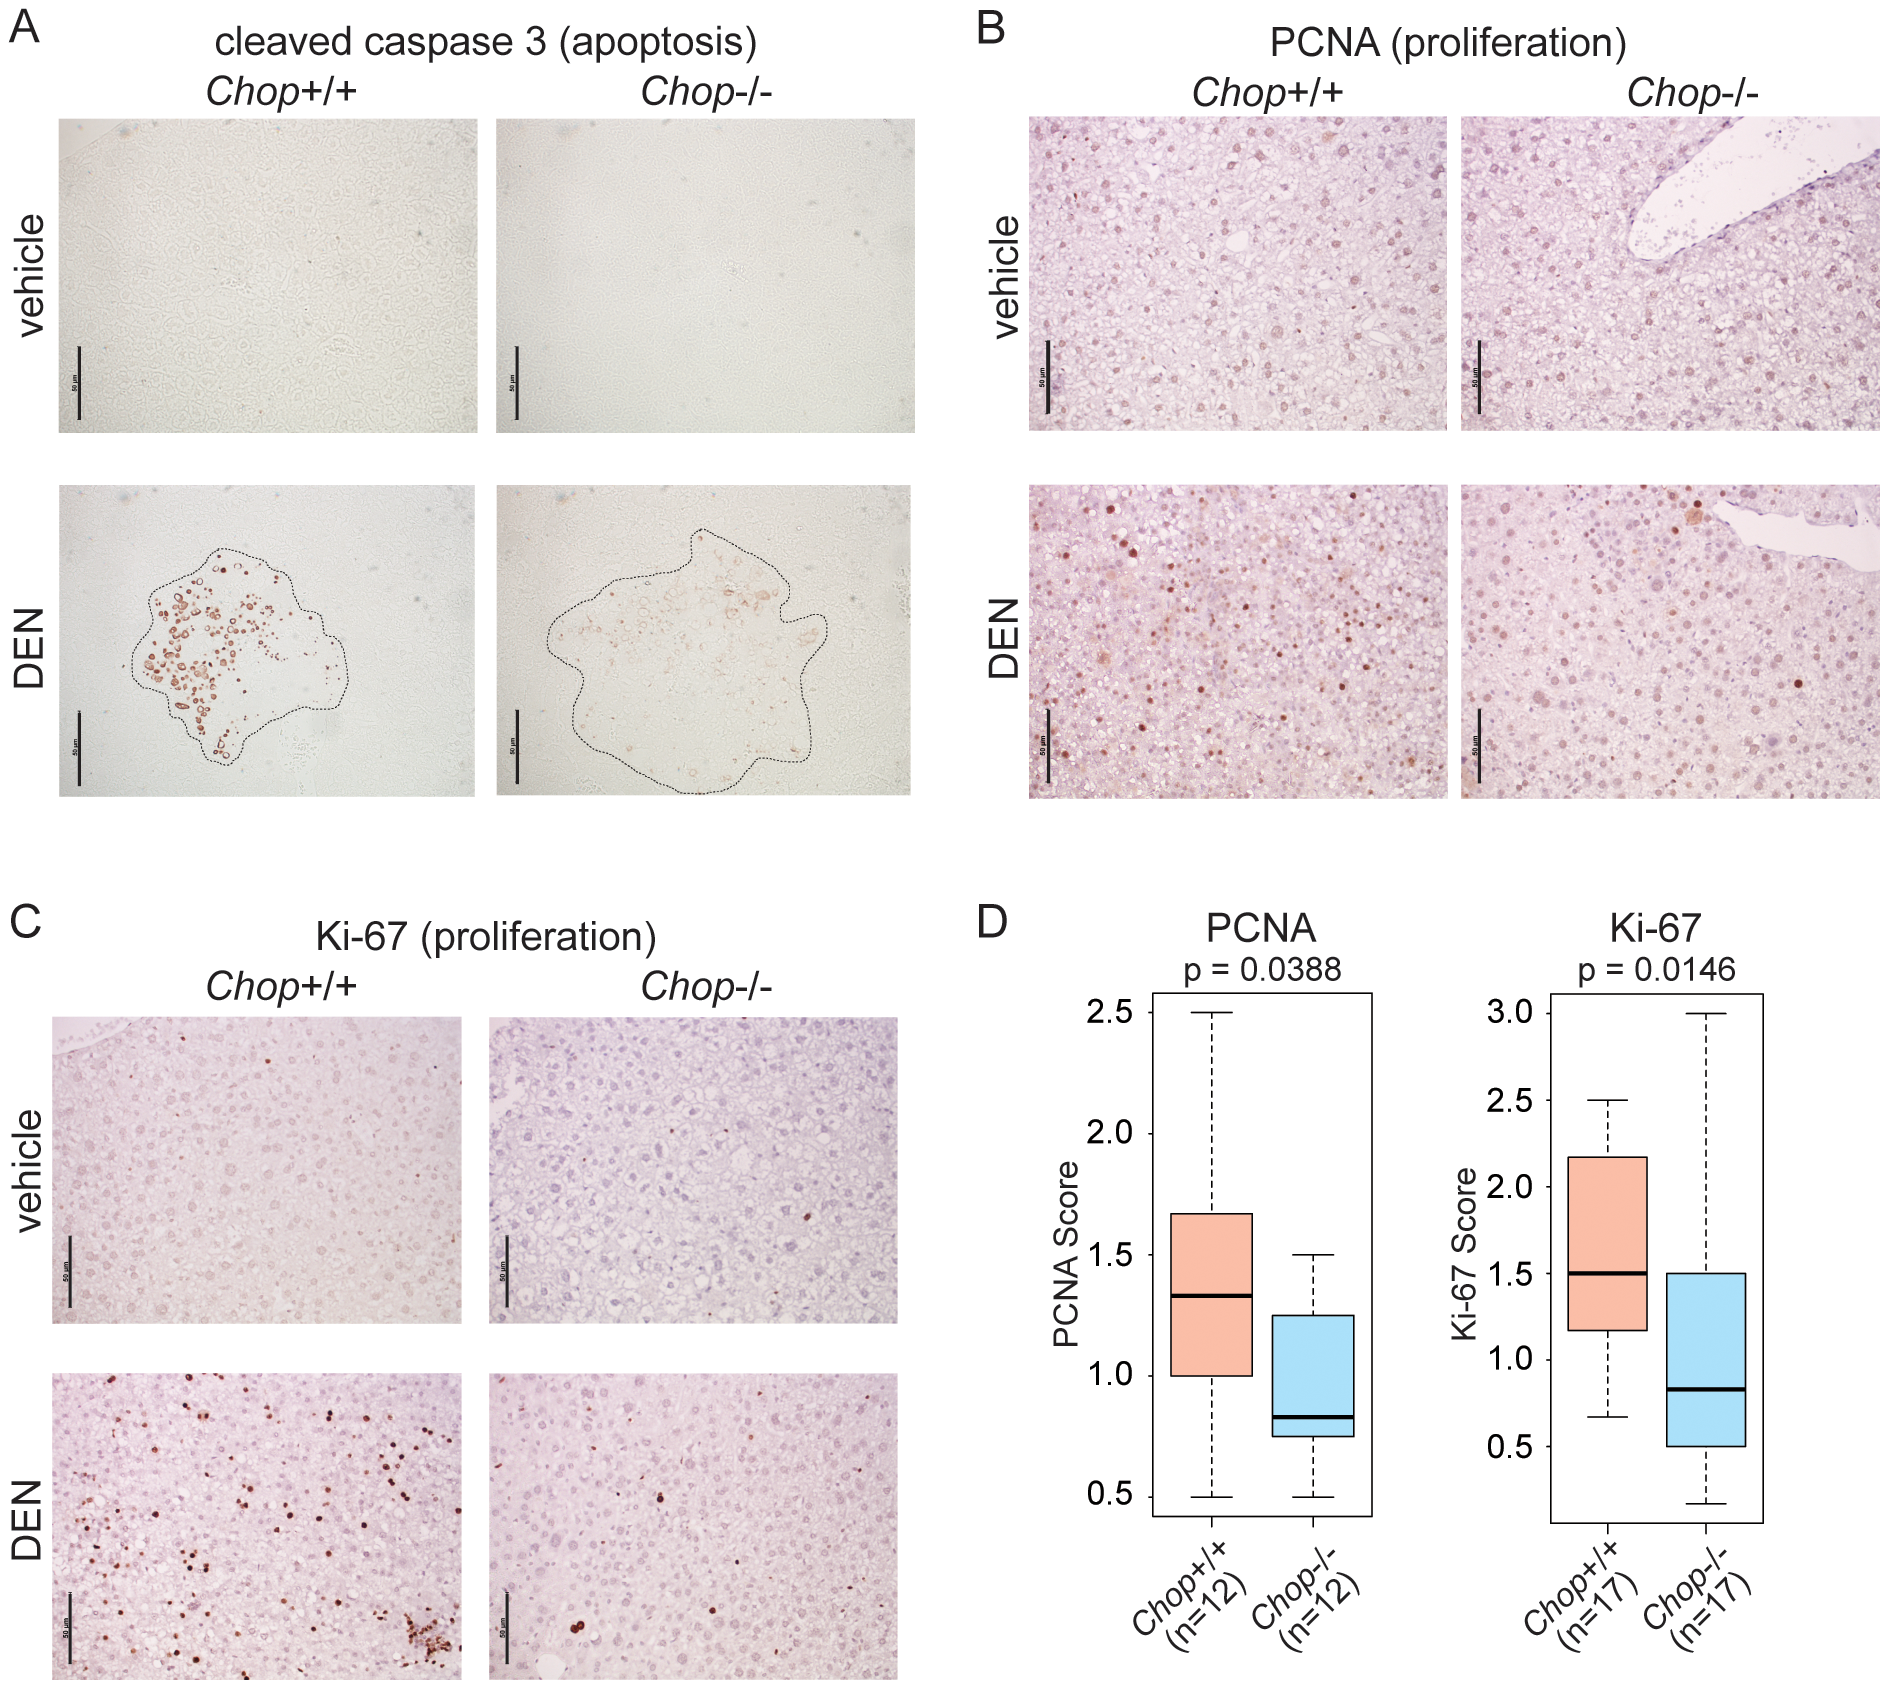 CHOP promotes hepatocellular apoptosis and proliferation.